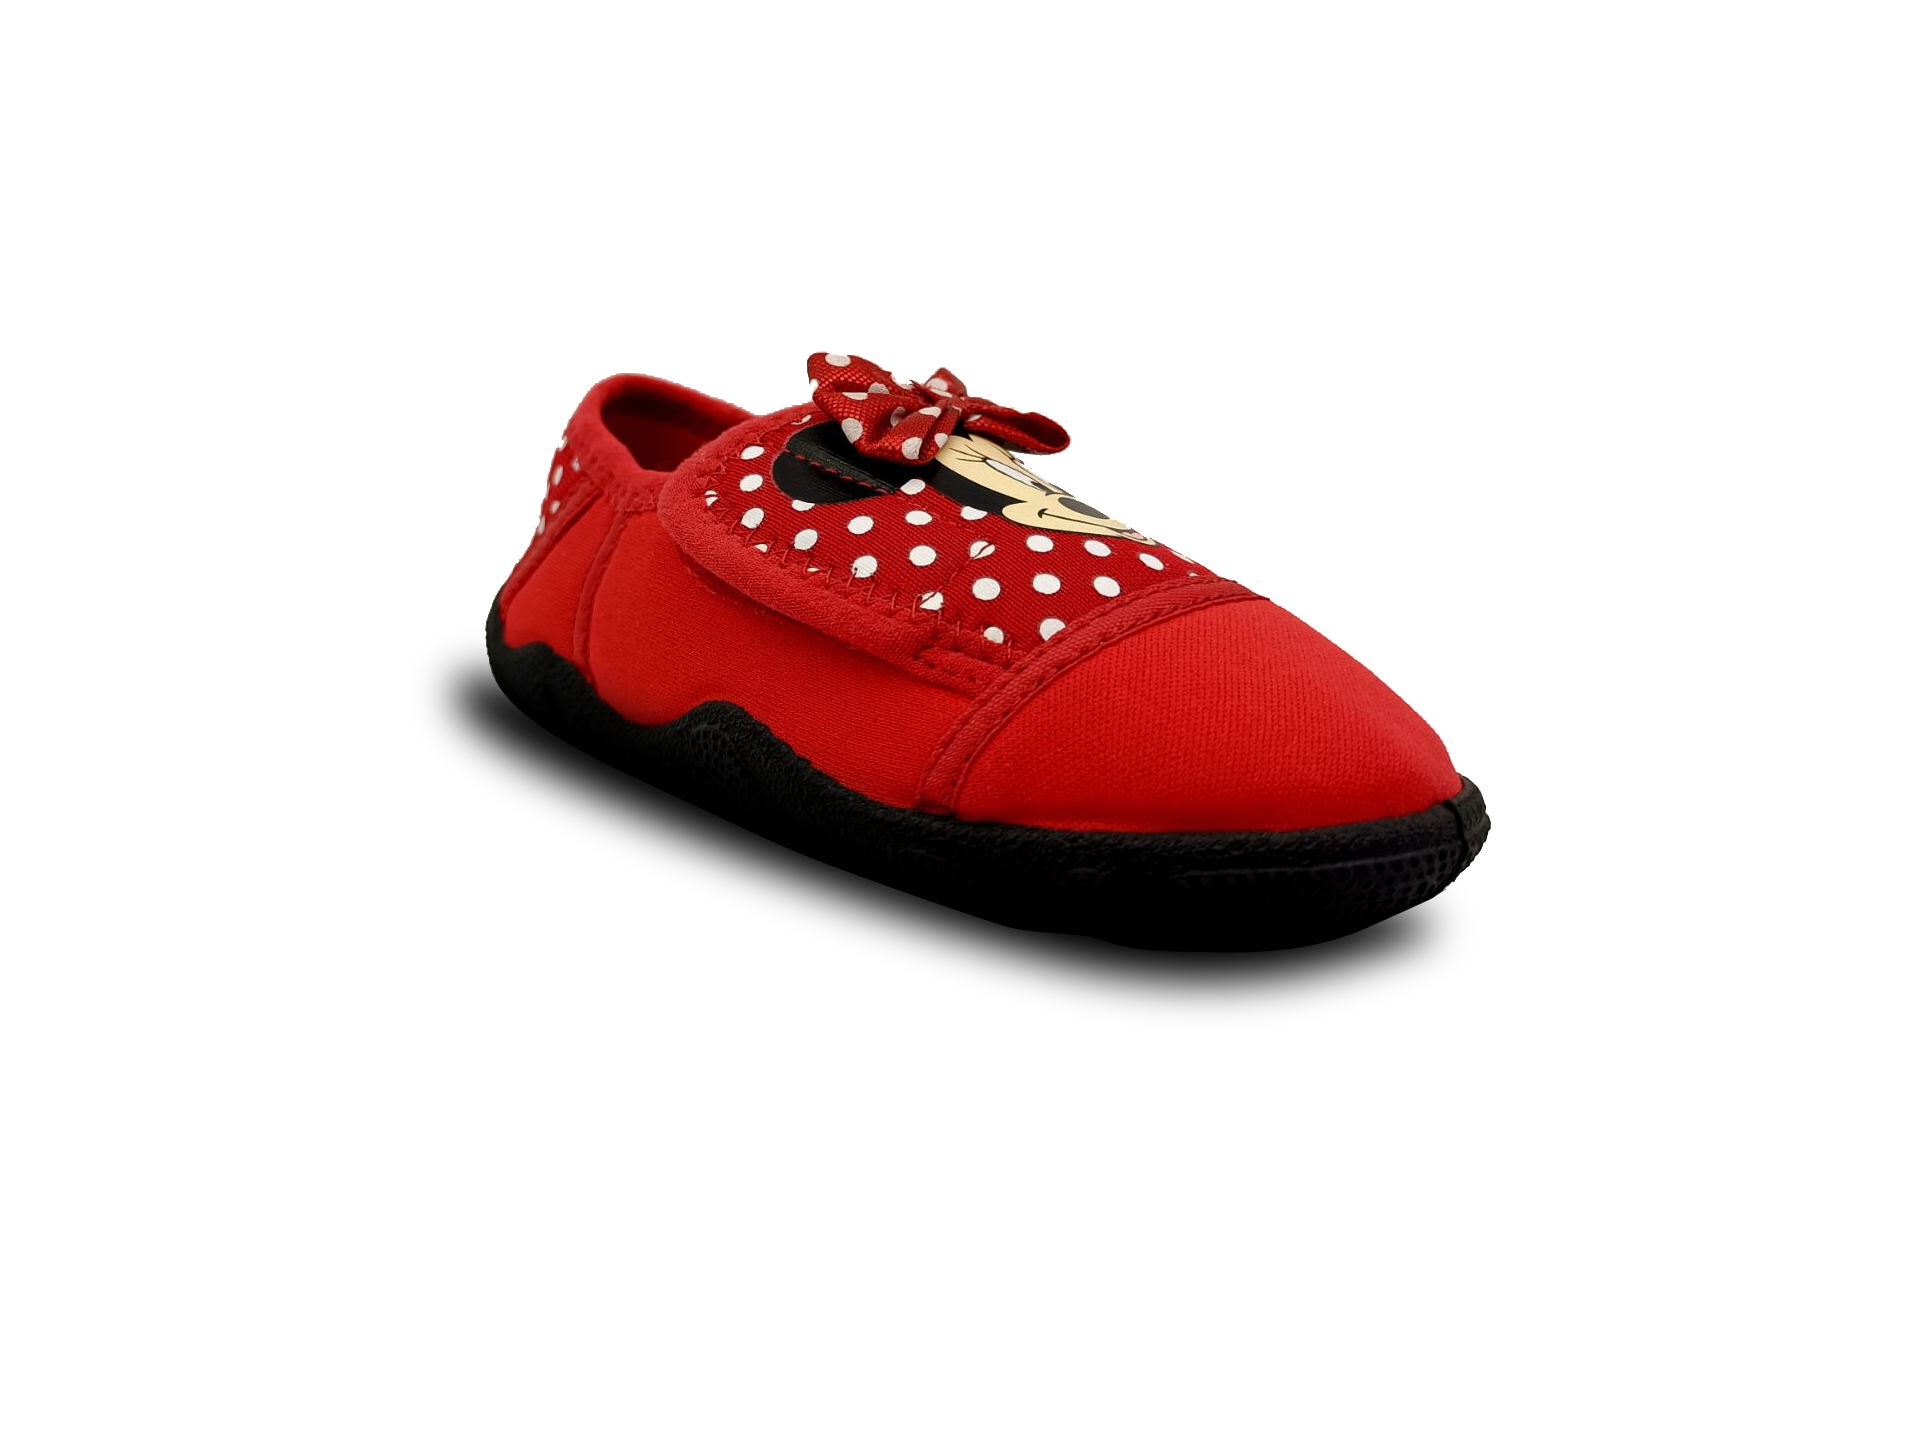 Toddler Girls' Minnie Mouse Water Shoes